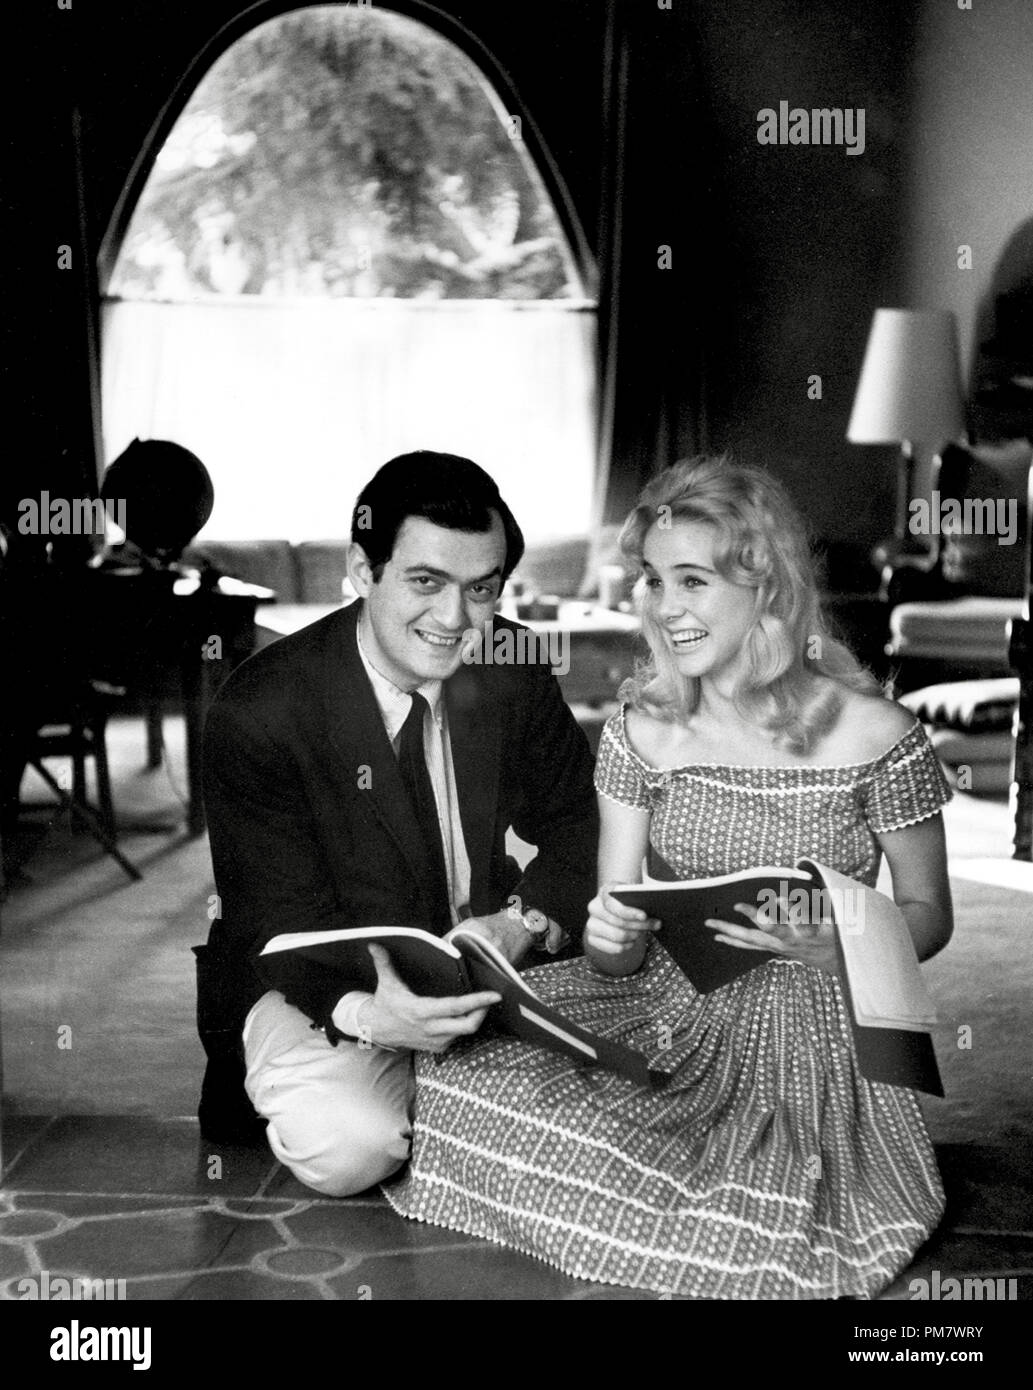 stanley-kubrick-and-sue-lyon-at-the-shoo